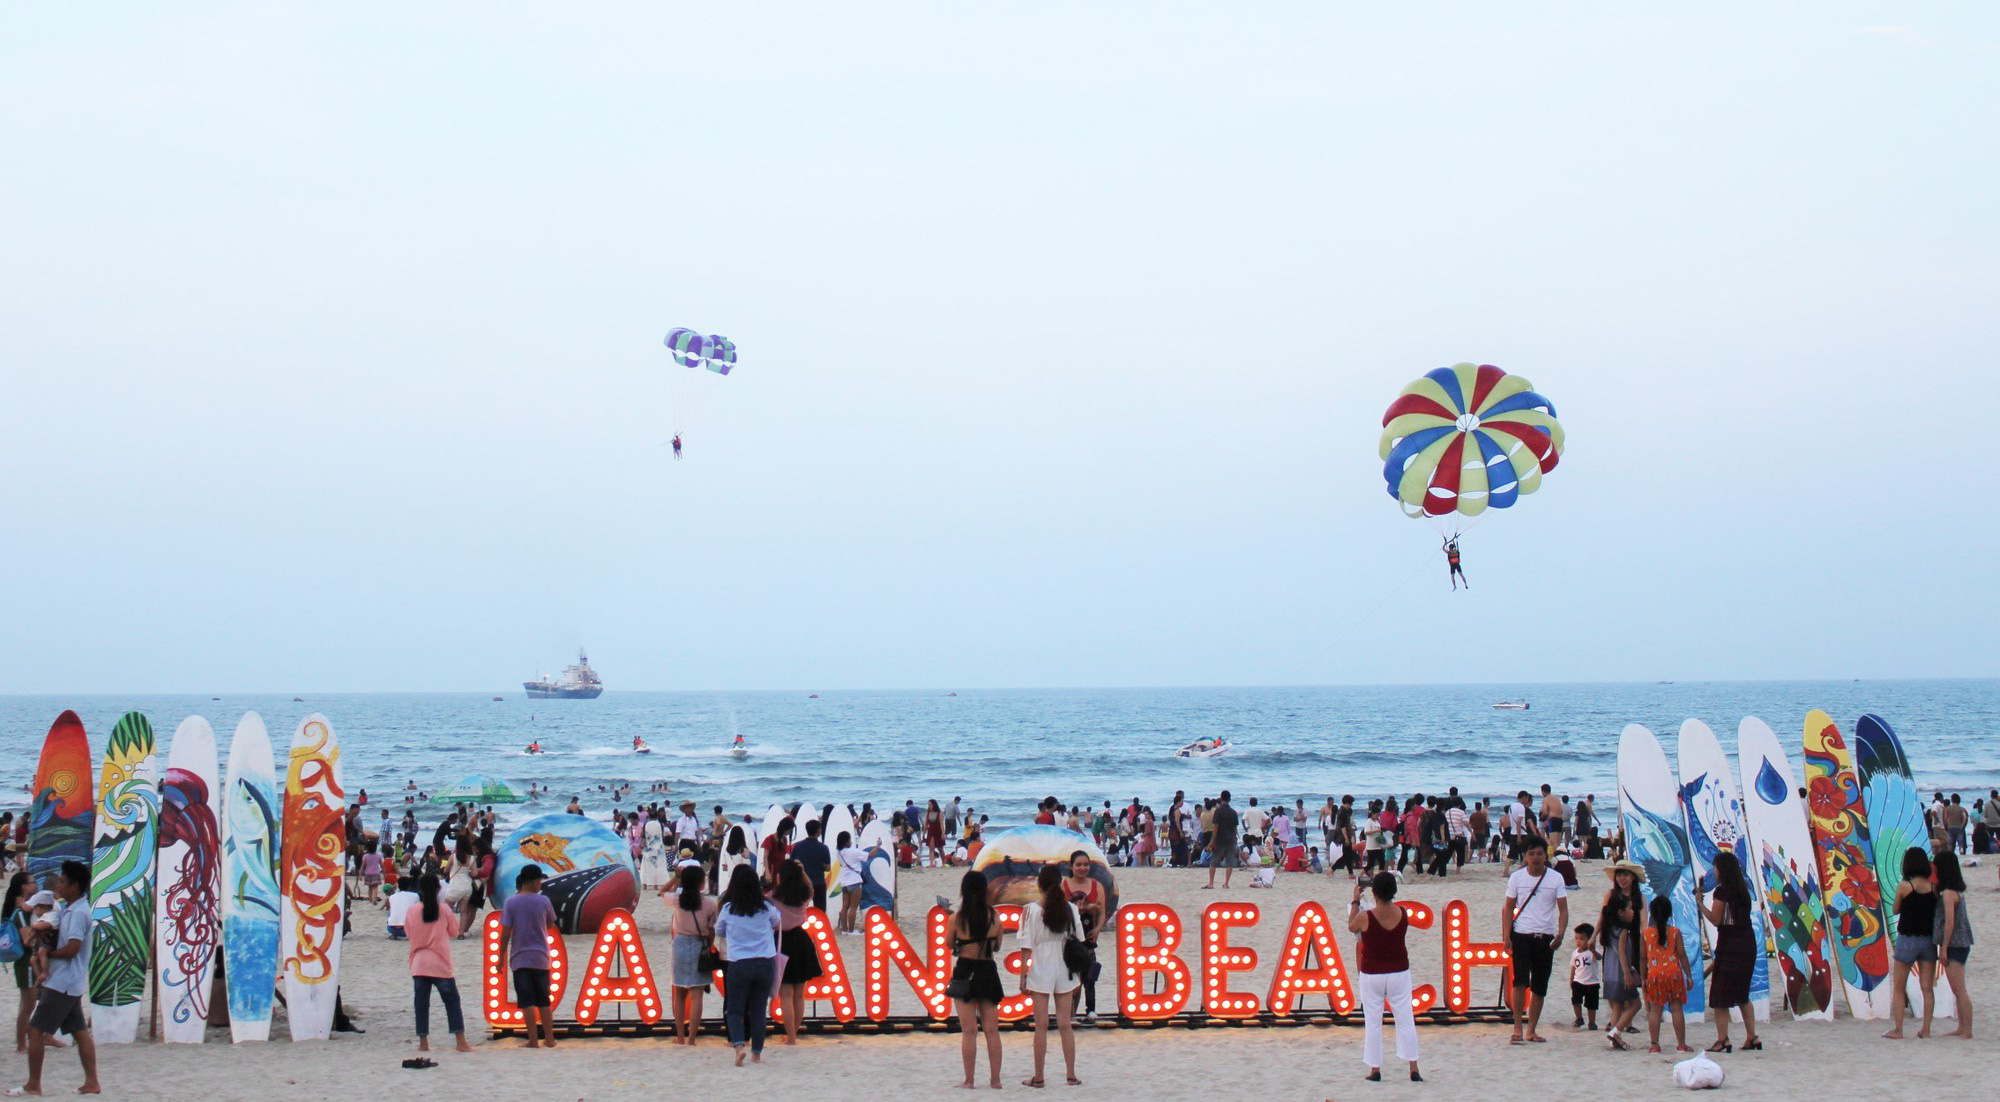 Indulge in water sports at forthcoming Da Nang Fantasticity Festival 2020